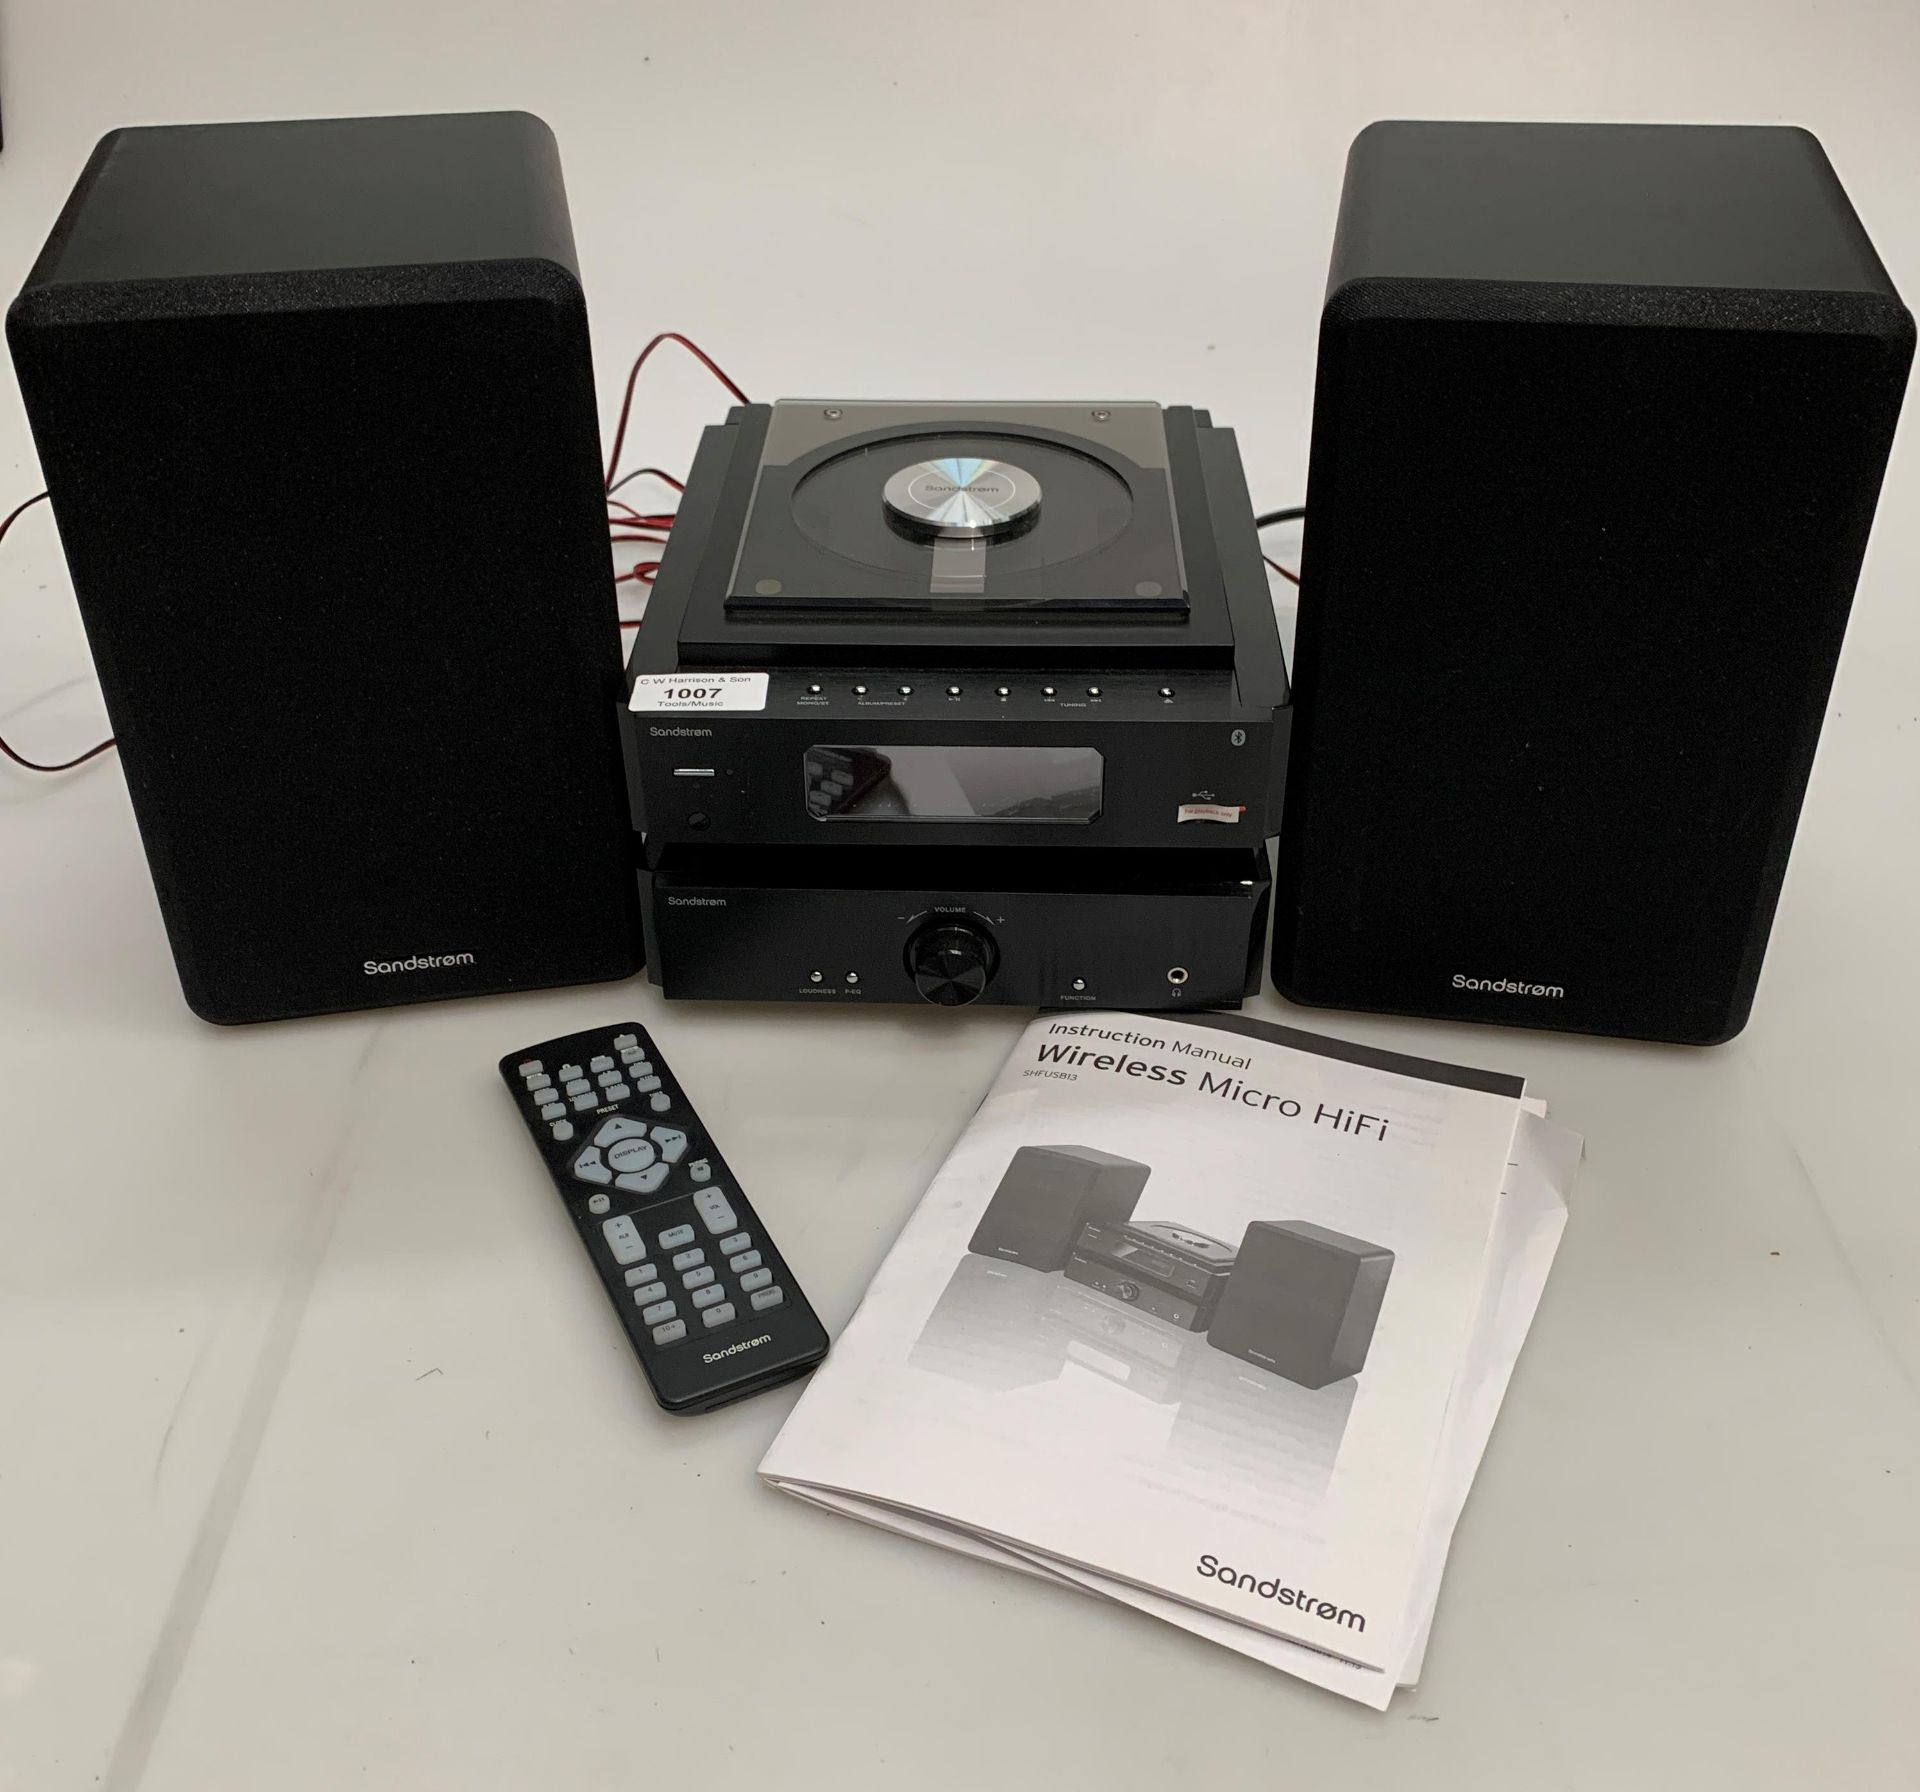 A Sandstrom SHFUSBIB wireless micro HiFi system complete with two speakers,